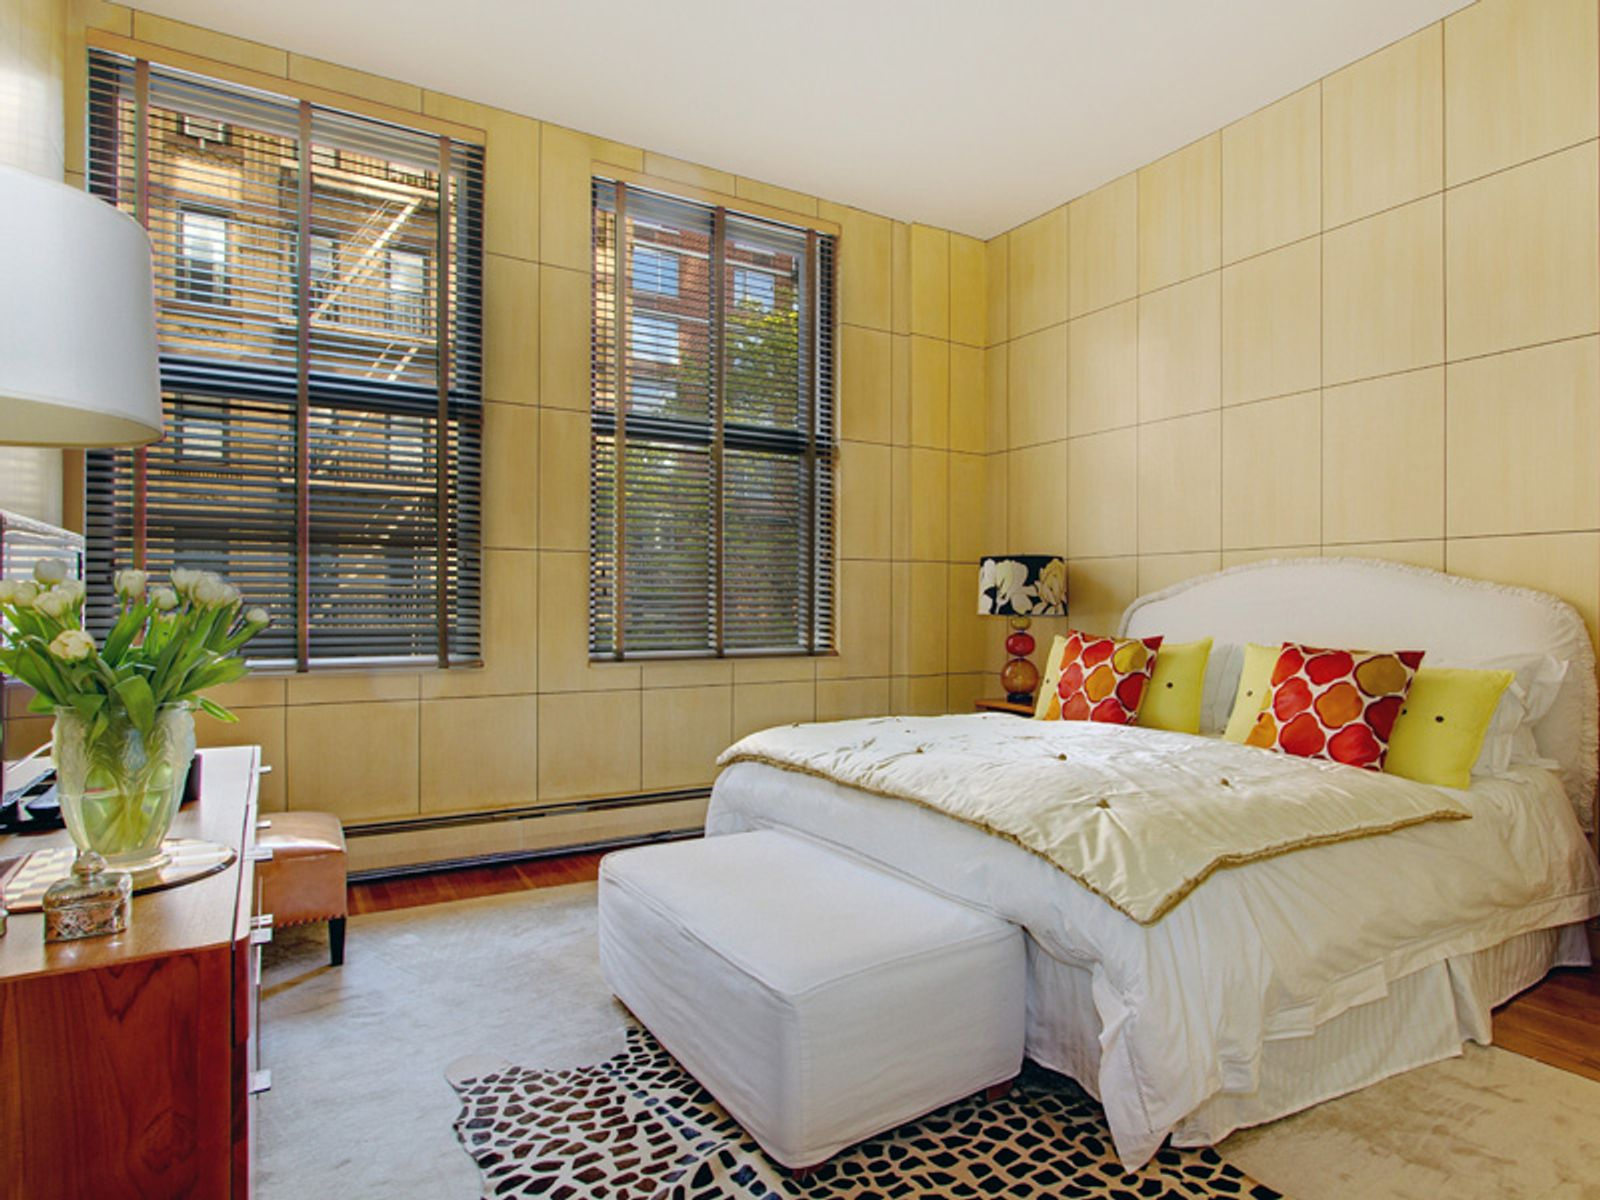 257 West 17th Street, Apt 2D